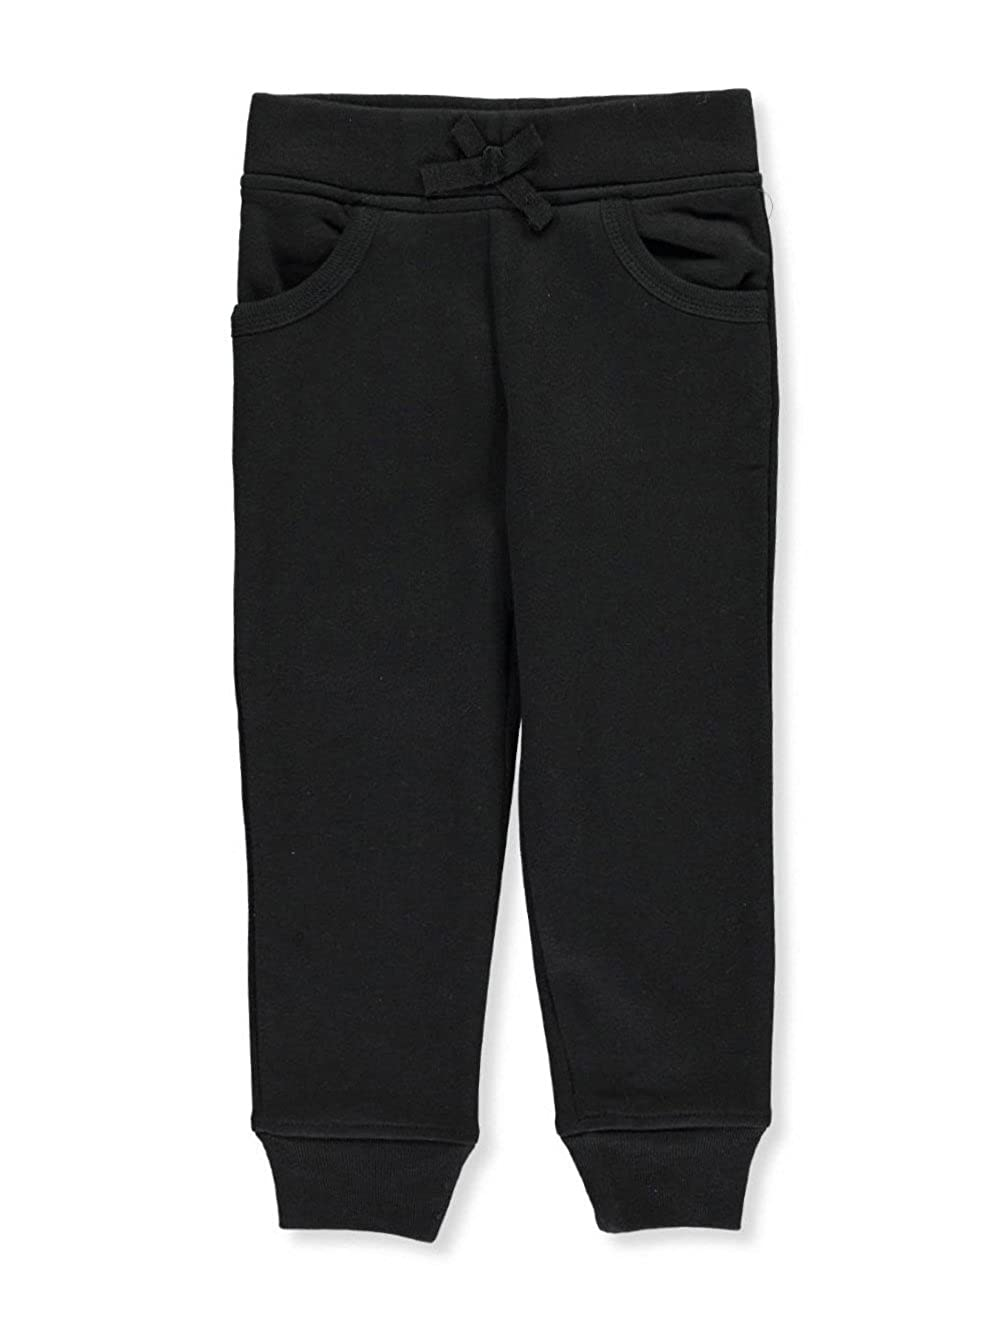 French Toast Little Girls' Toddler Fleece Joggers - Black, 4t